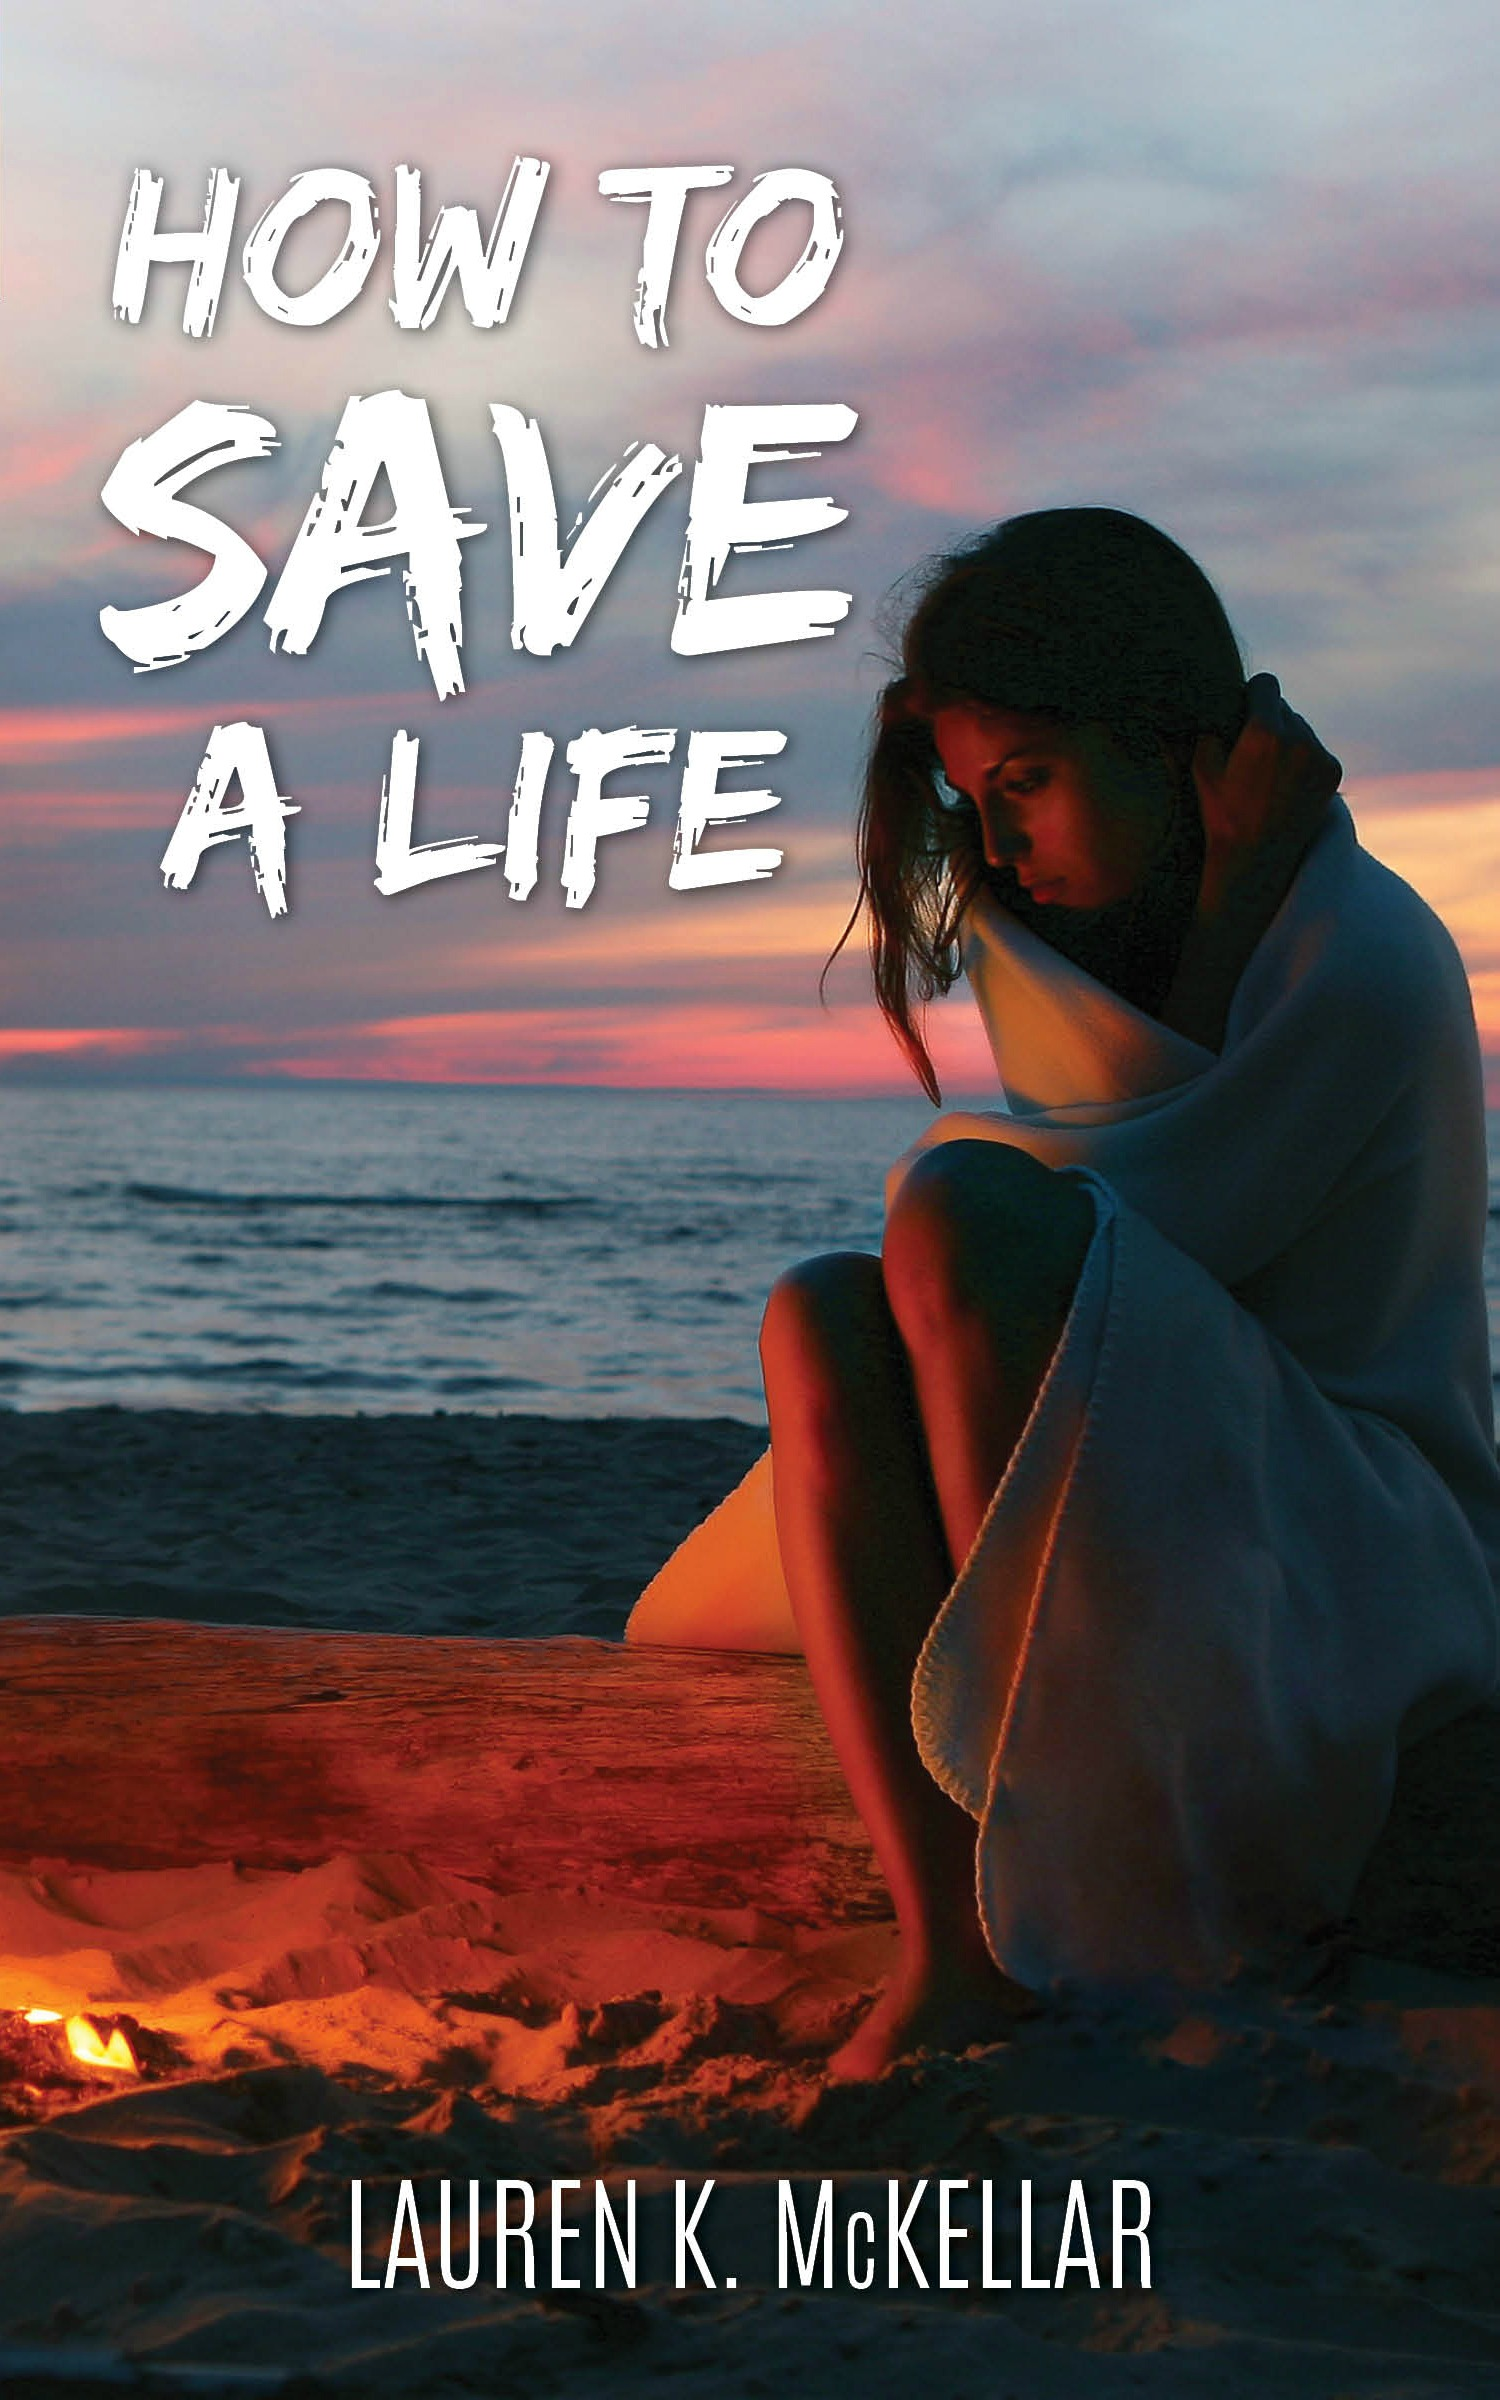 How to Save a Life Ebook Cover